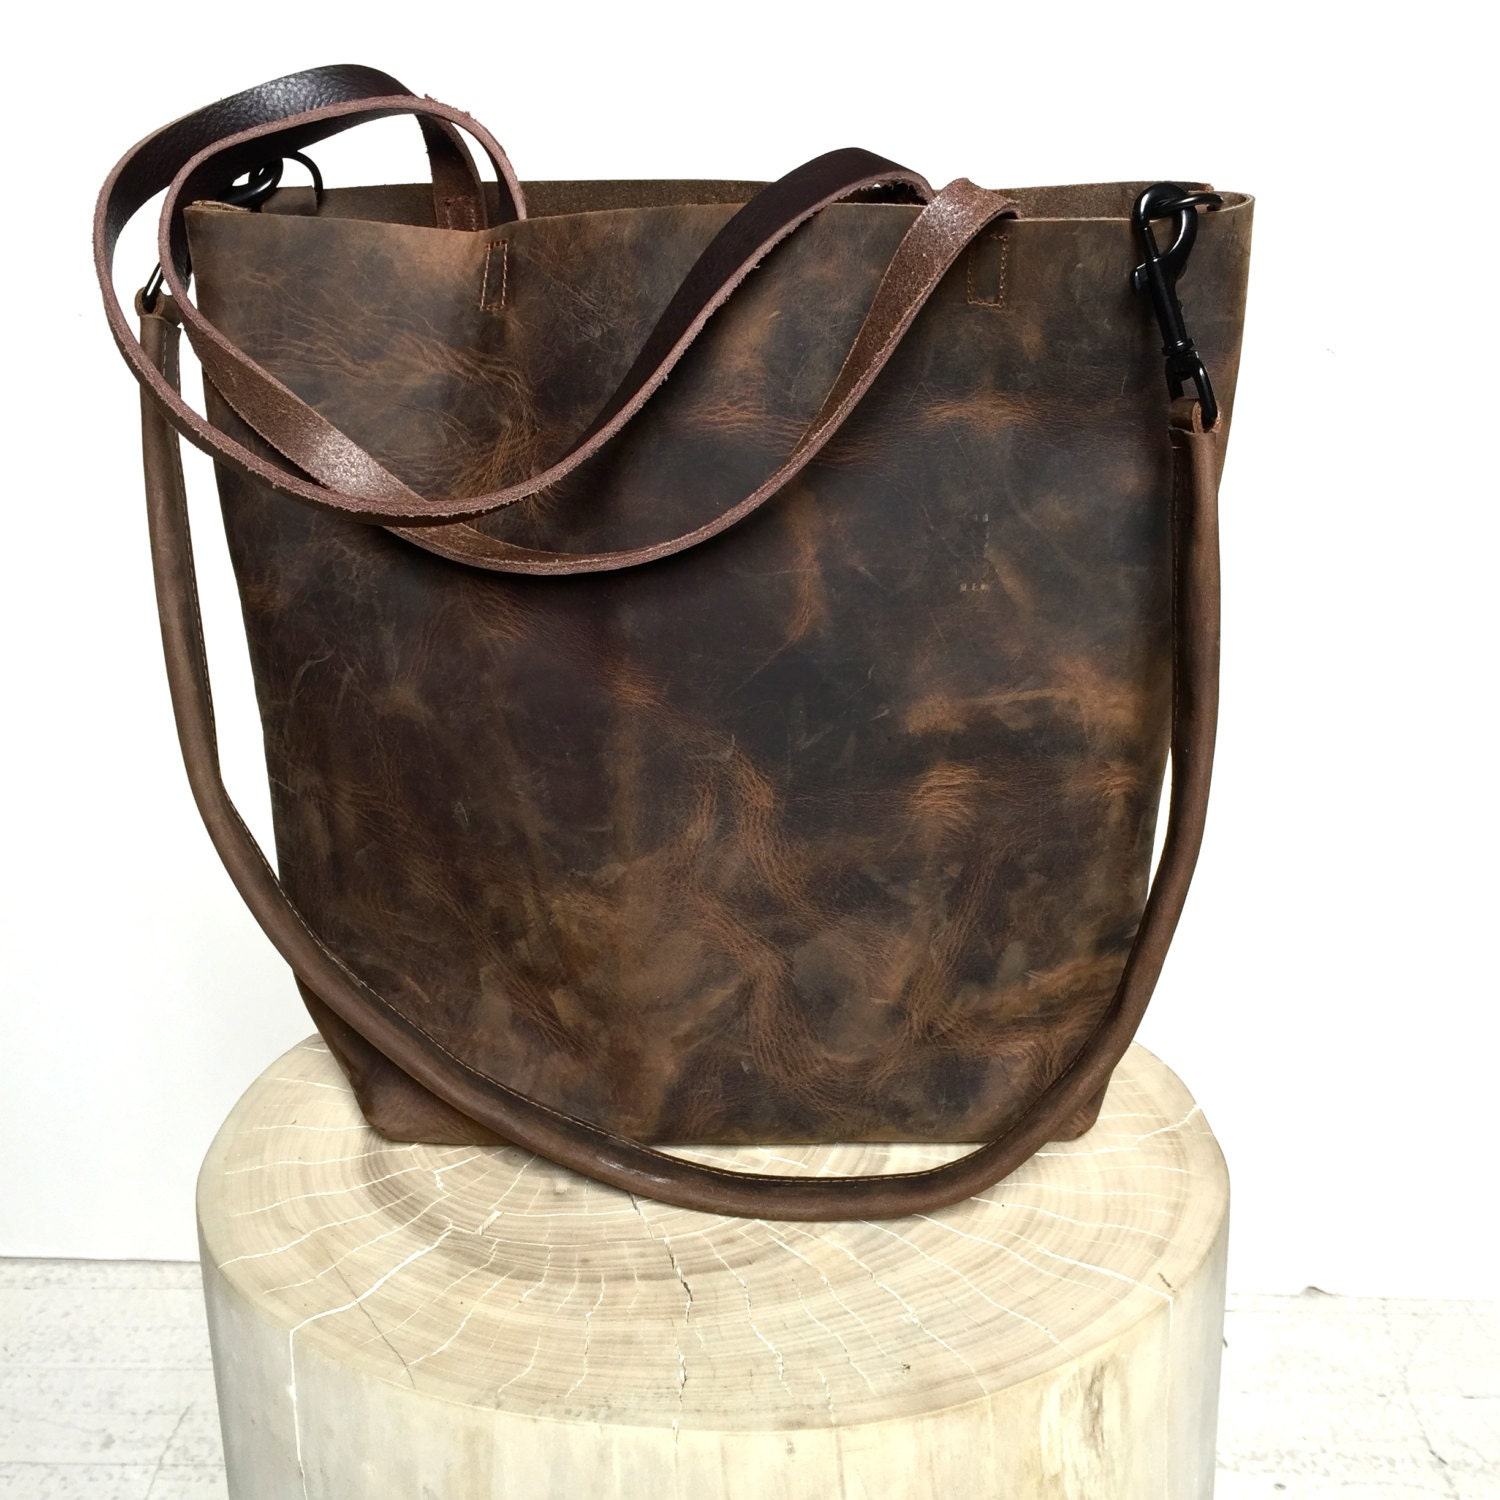 Dark Brown Leather Tote Bag large brown leather bag